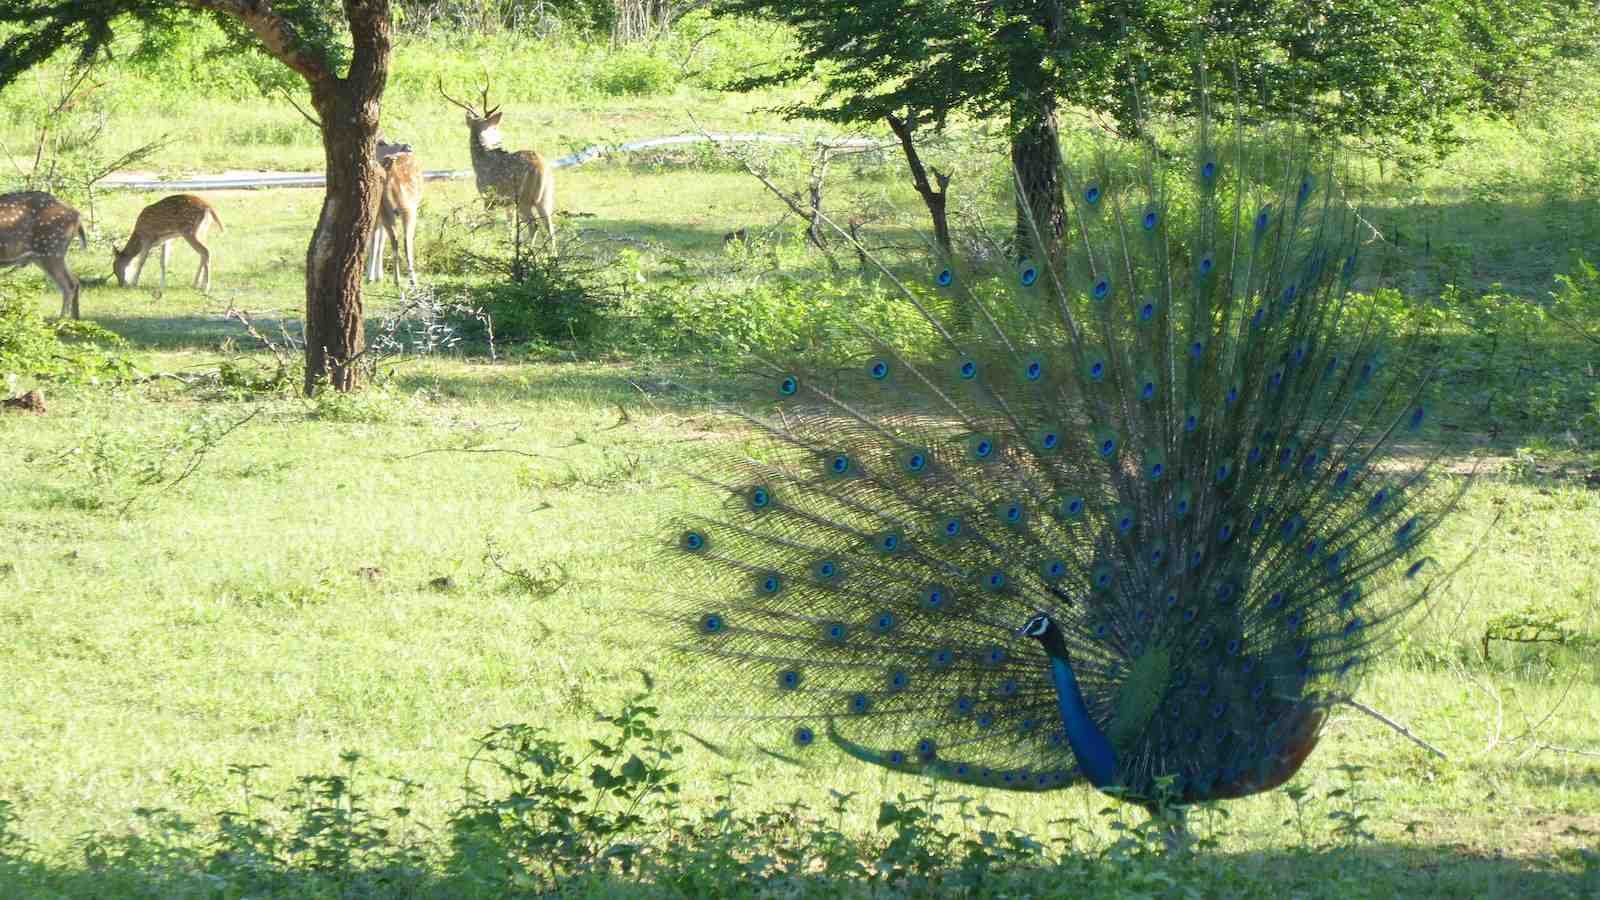 Pre-book your Udawalawe Safari to ensure you get to see all the gorgeous wildlife